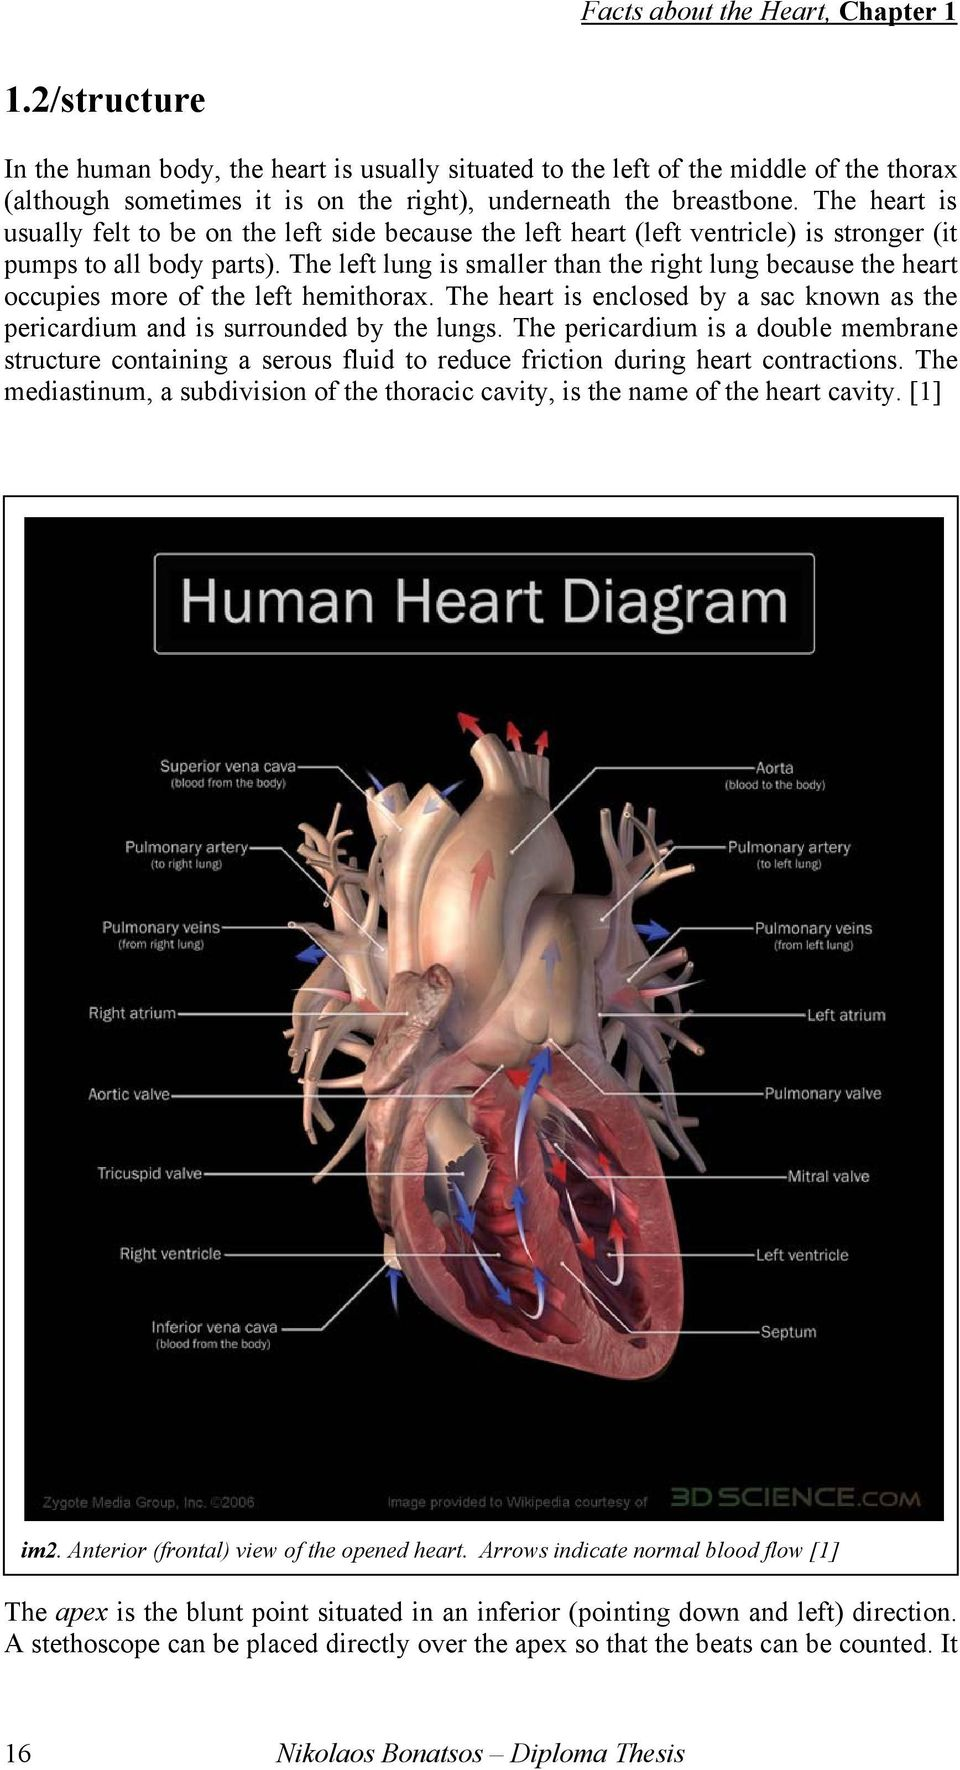 The heart is usually felt to be on the left side because the left heart (left ventricle) is stronger (it pumps to all body parts).